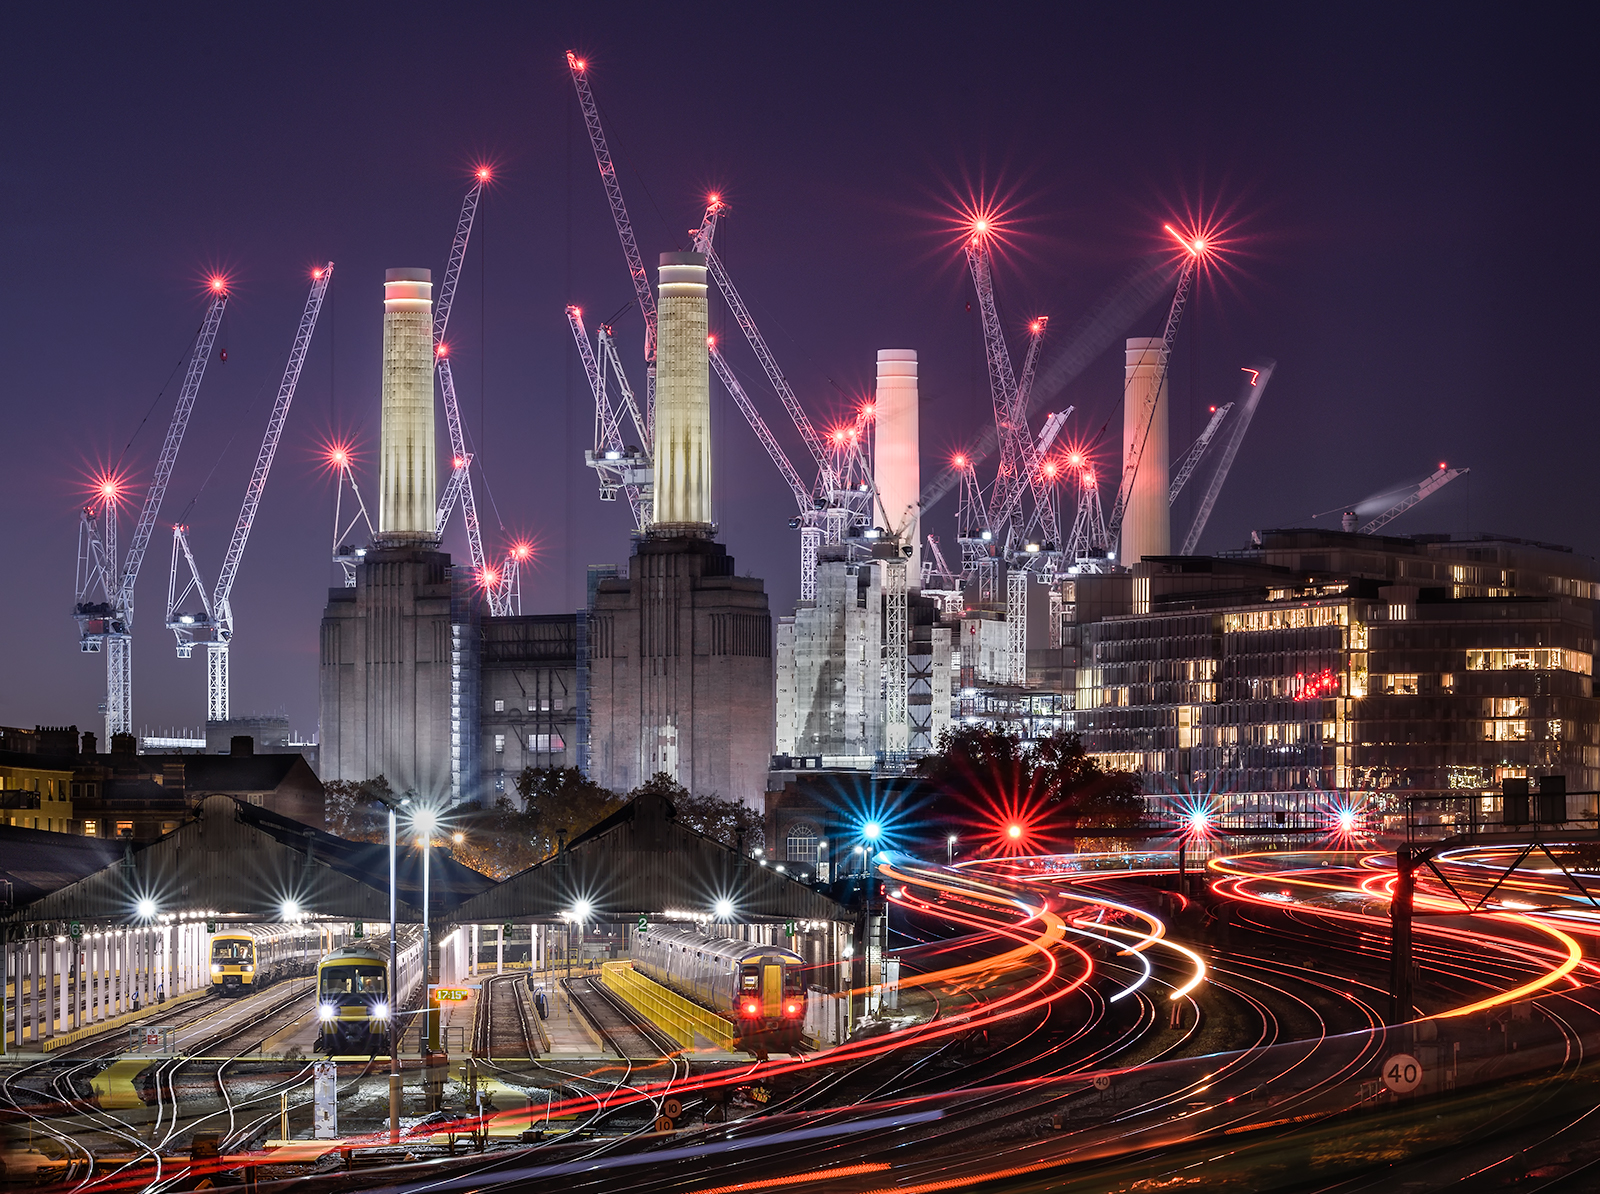 A crown of cranes for Battersea Power Station, as it is being renovated and repurposed